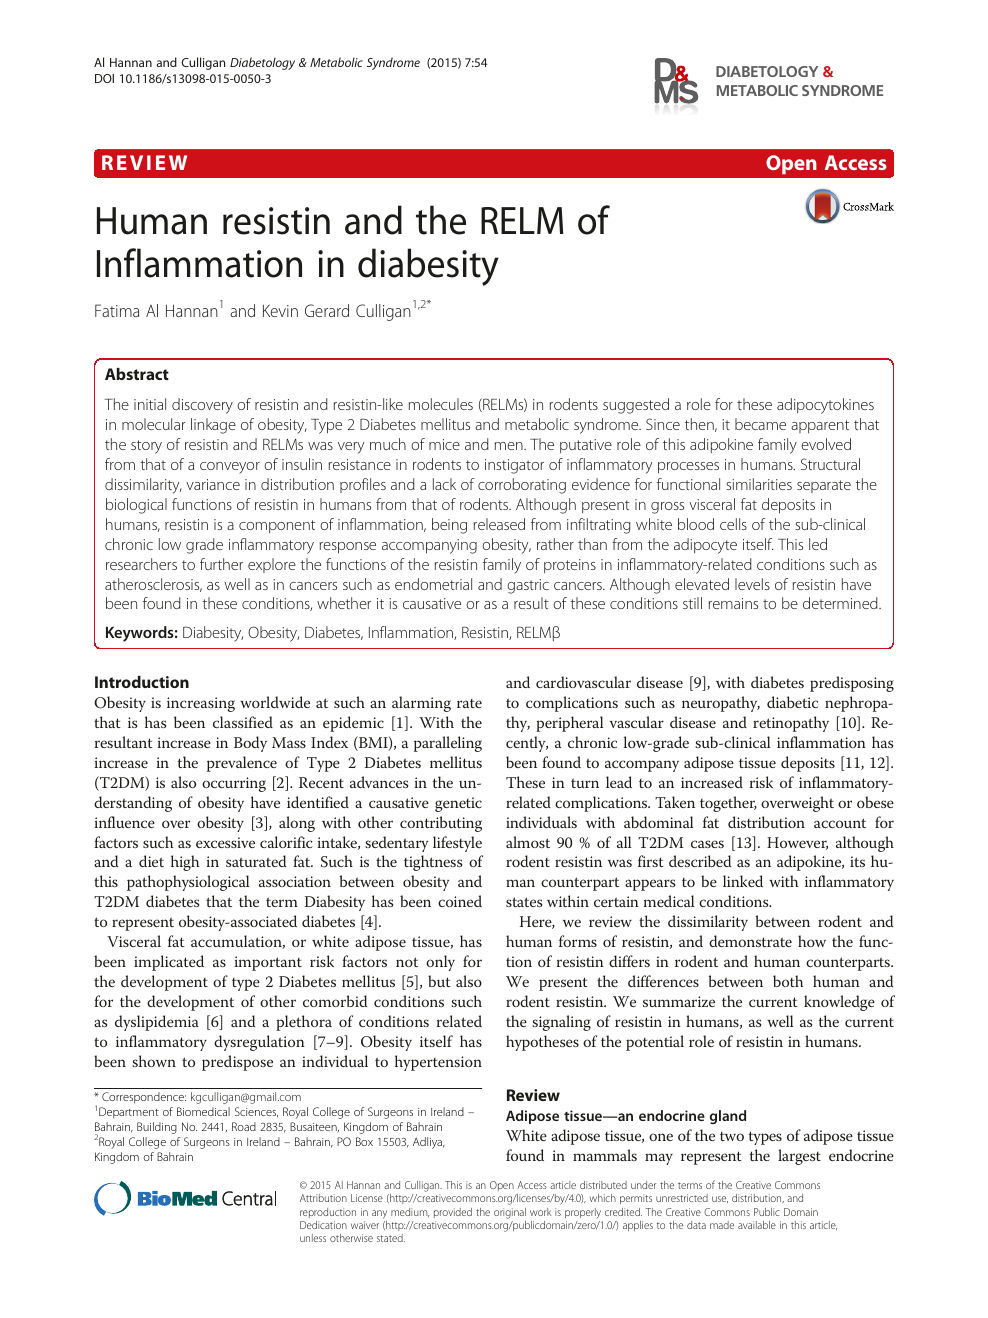 Human resistin and the RELM of Inflammation in diabesity